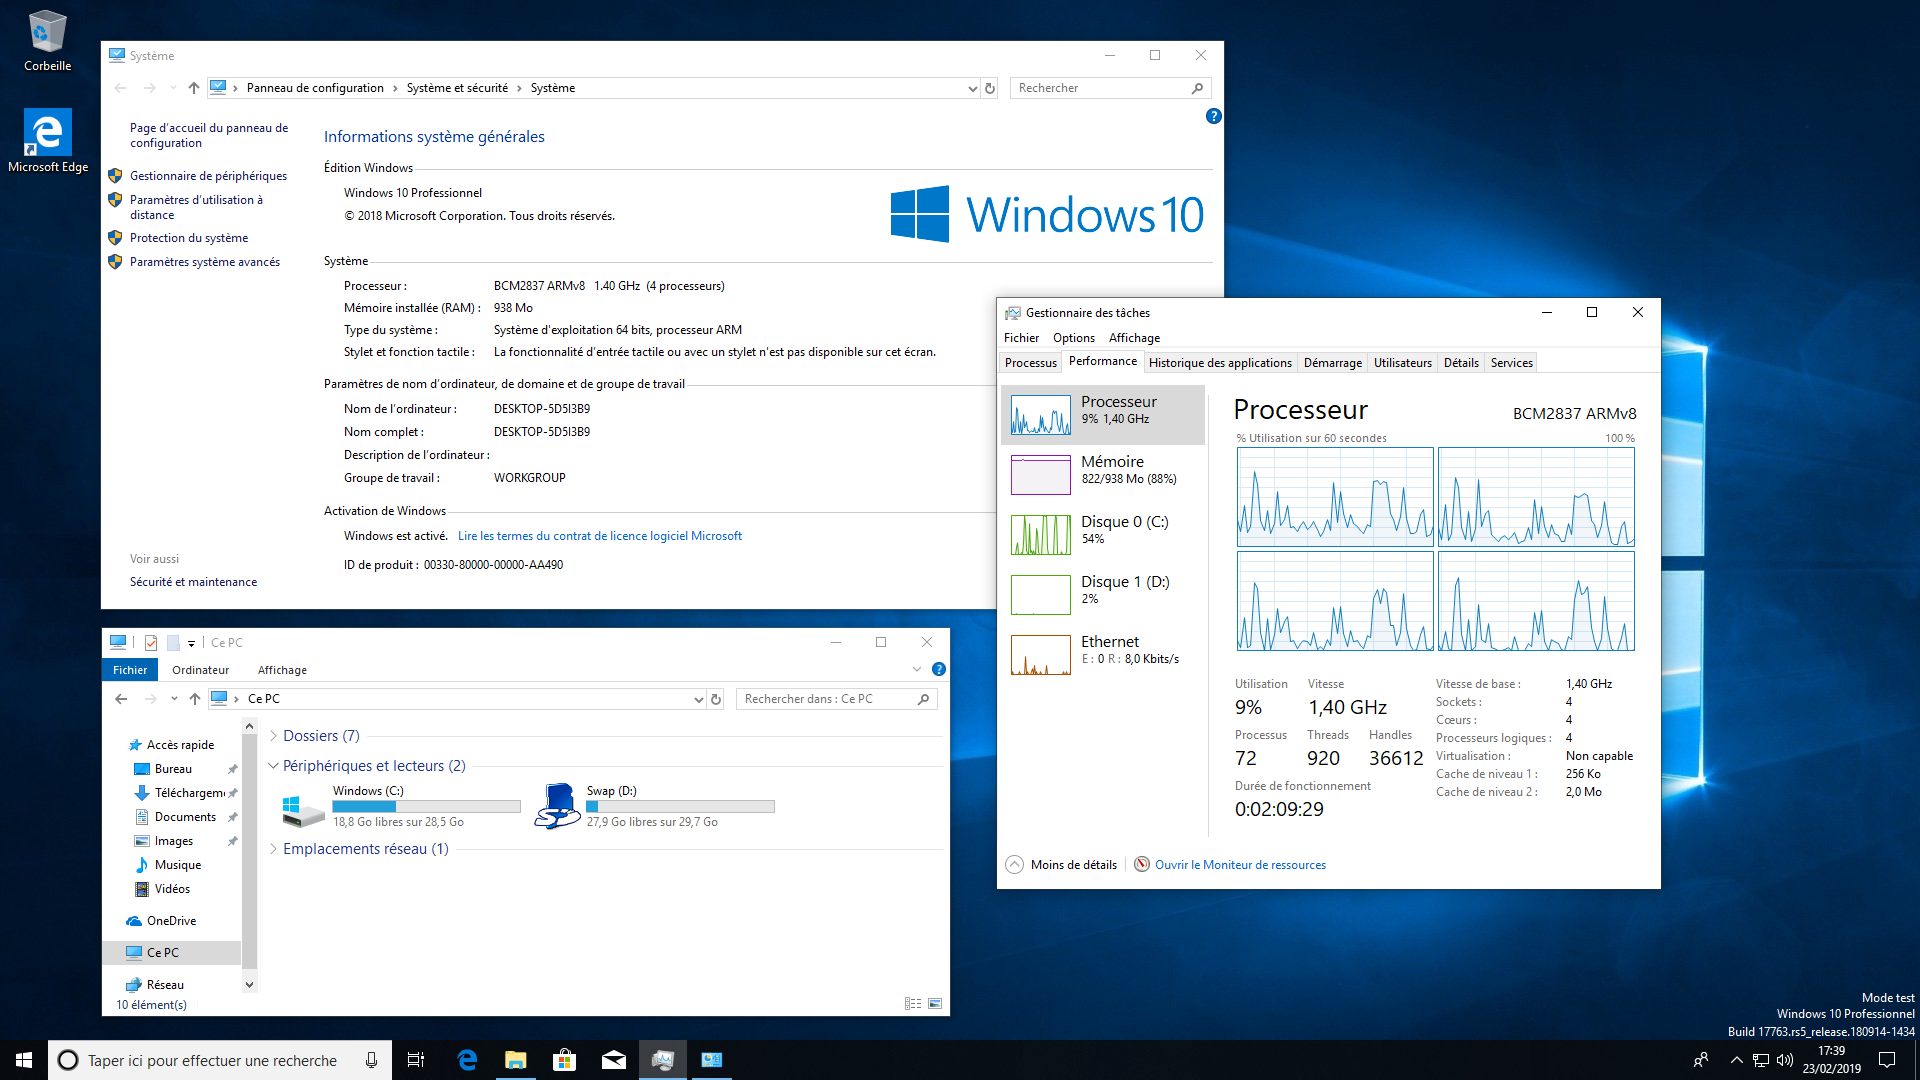 Windows 10 on ARM Raspberry Pi